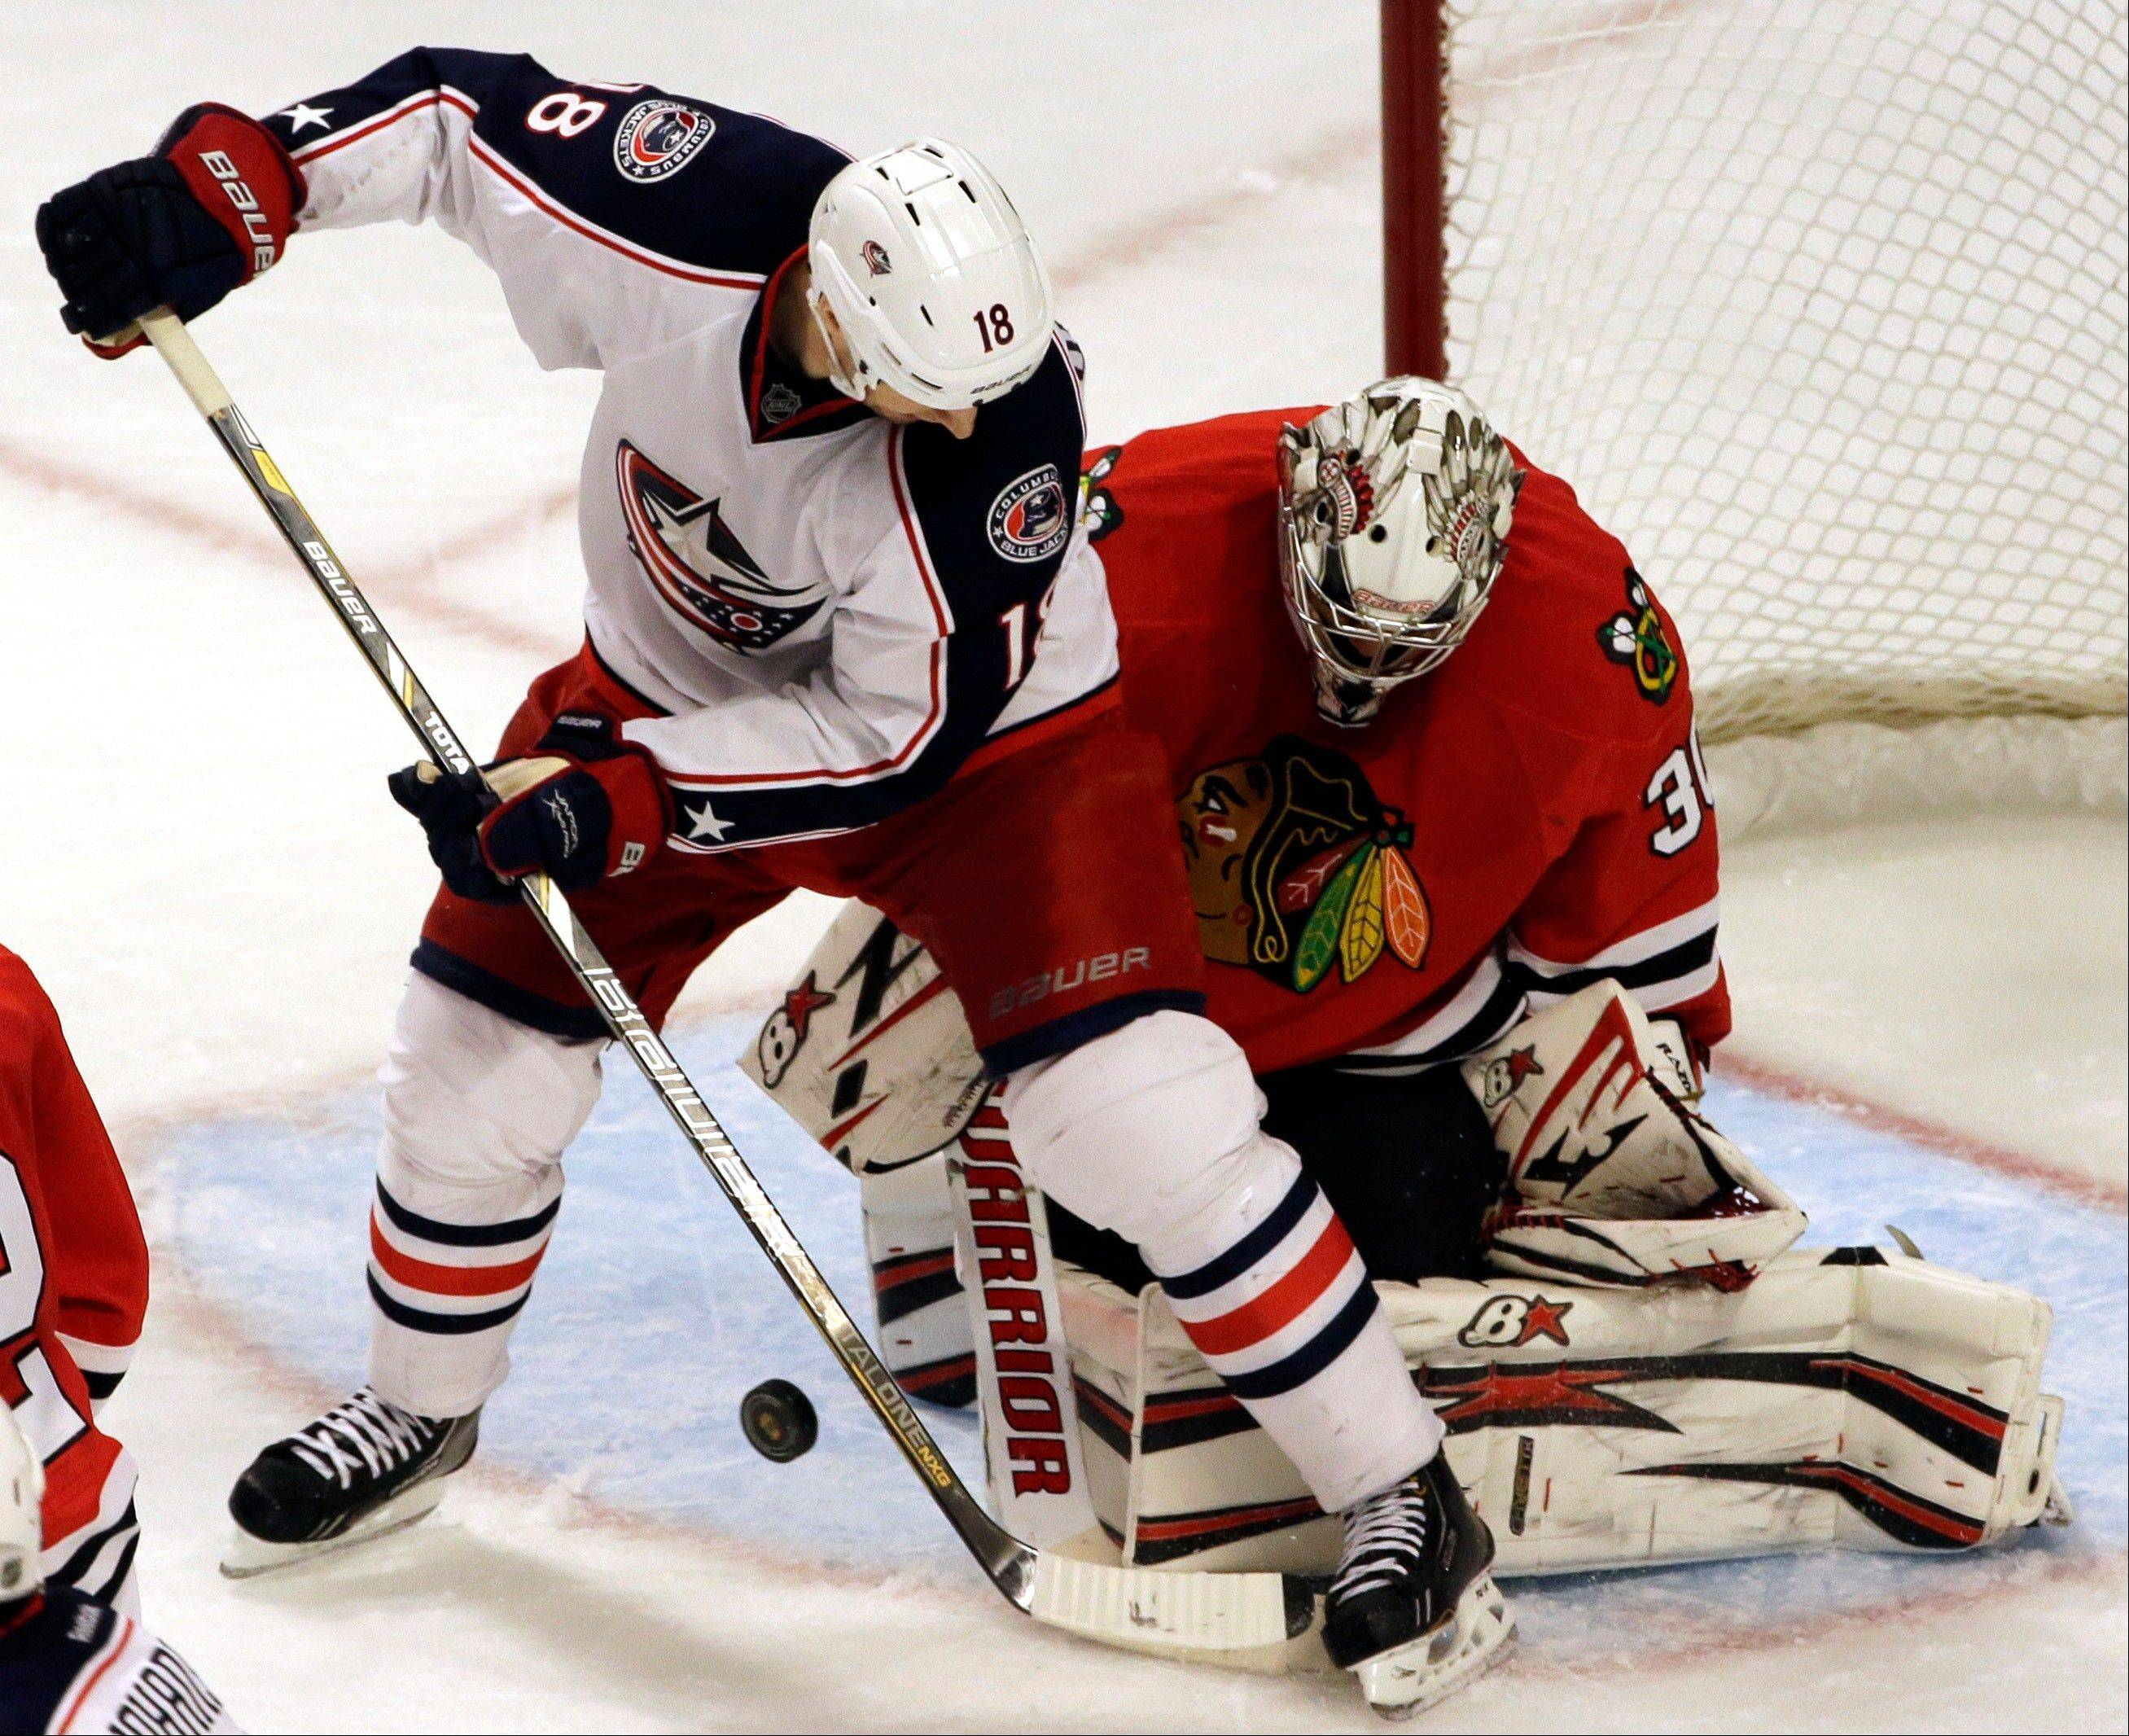 Chicago Blackhawks goalie Ray Emery, right, blocks a shot by Columbus Blue Jackets' RJ Umberger during the third period.